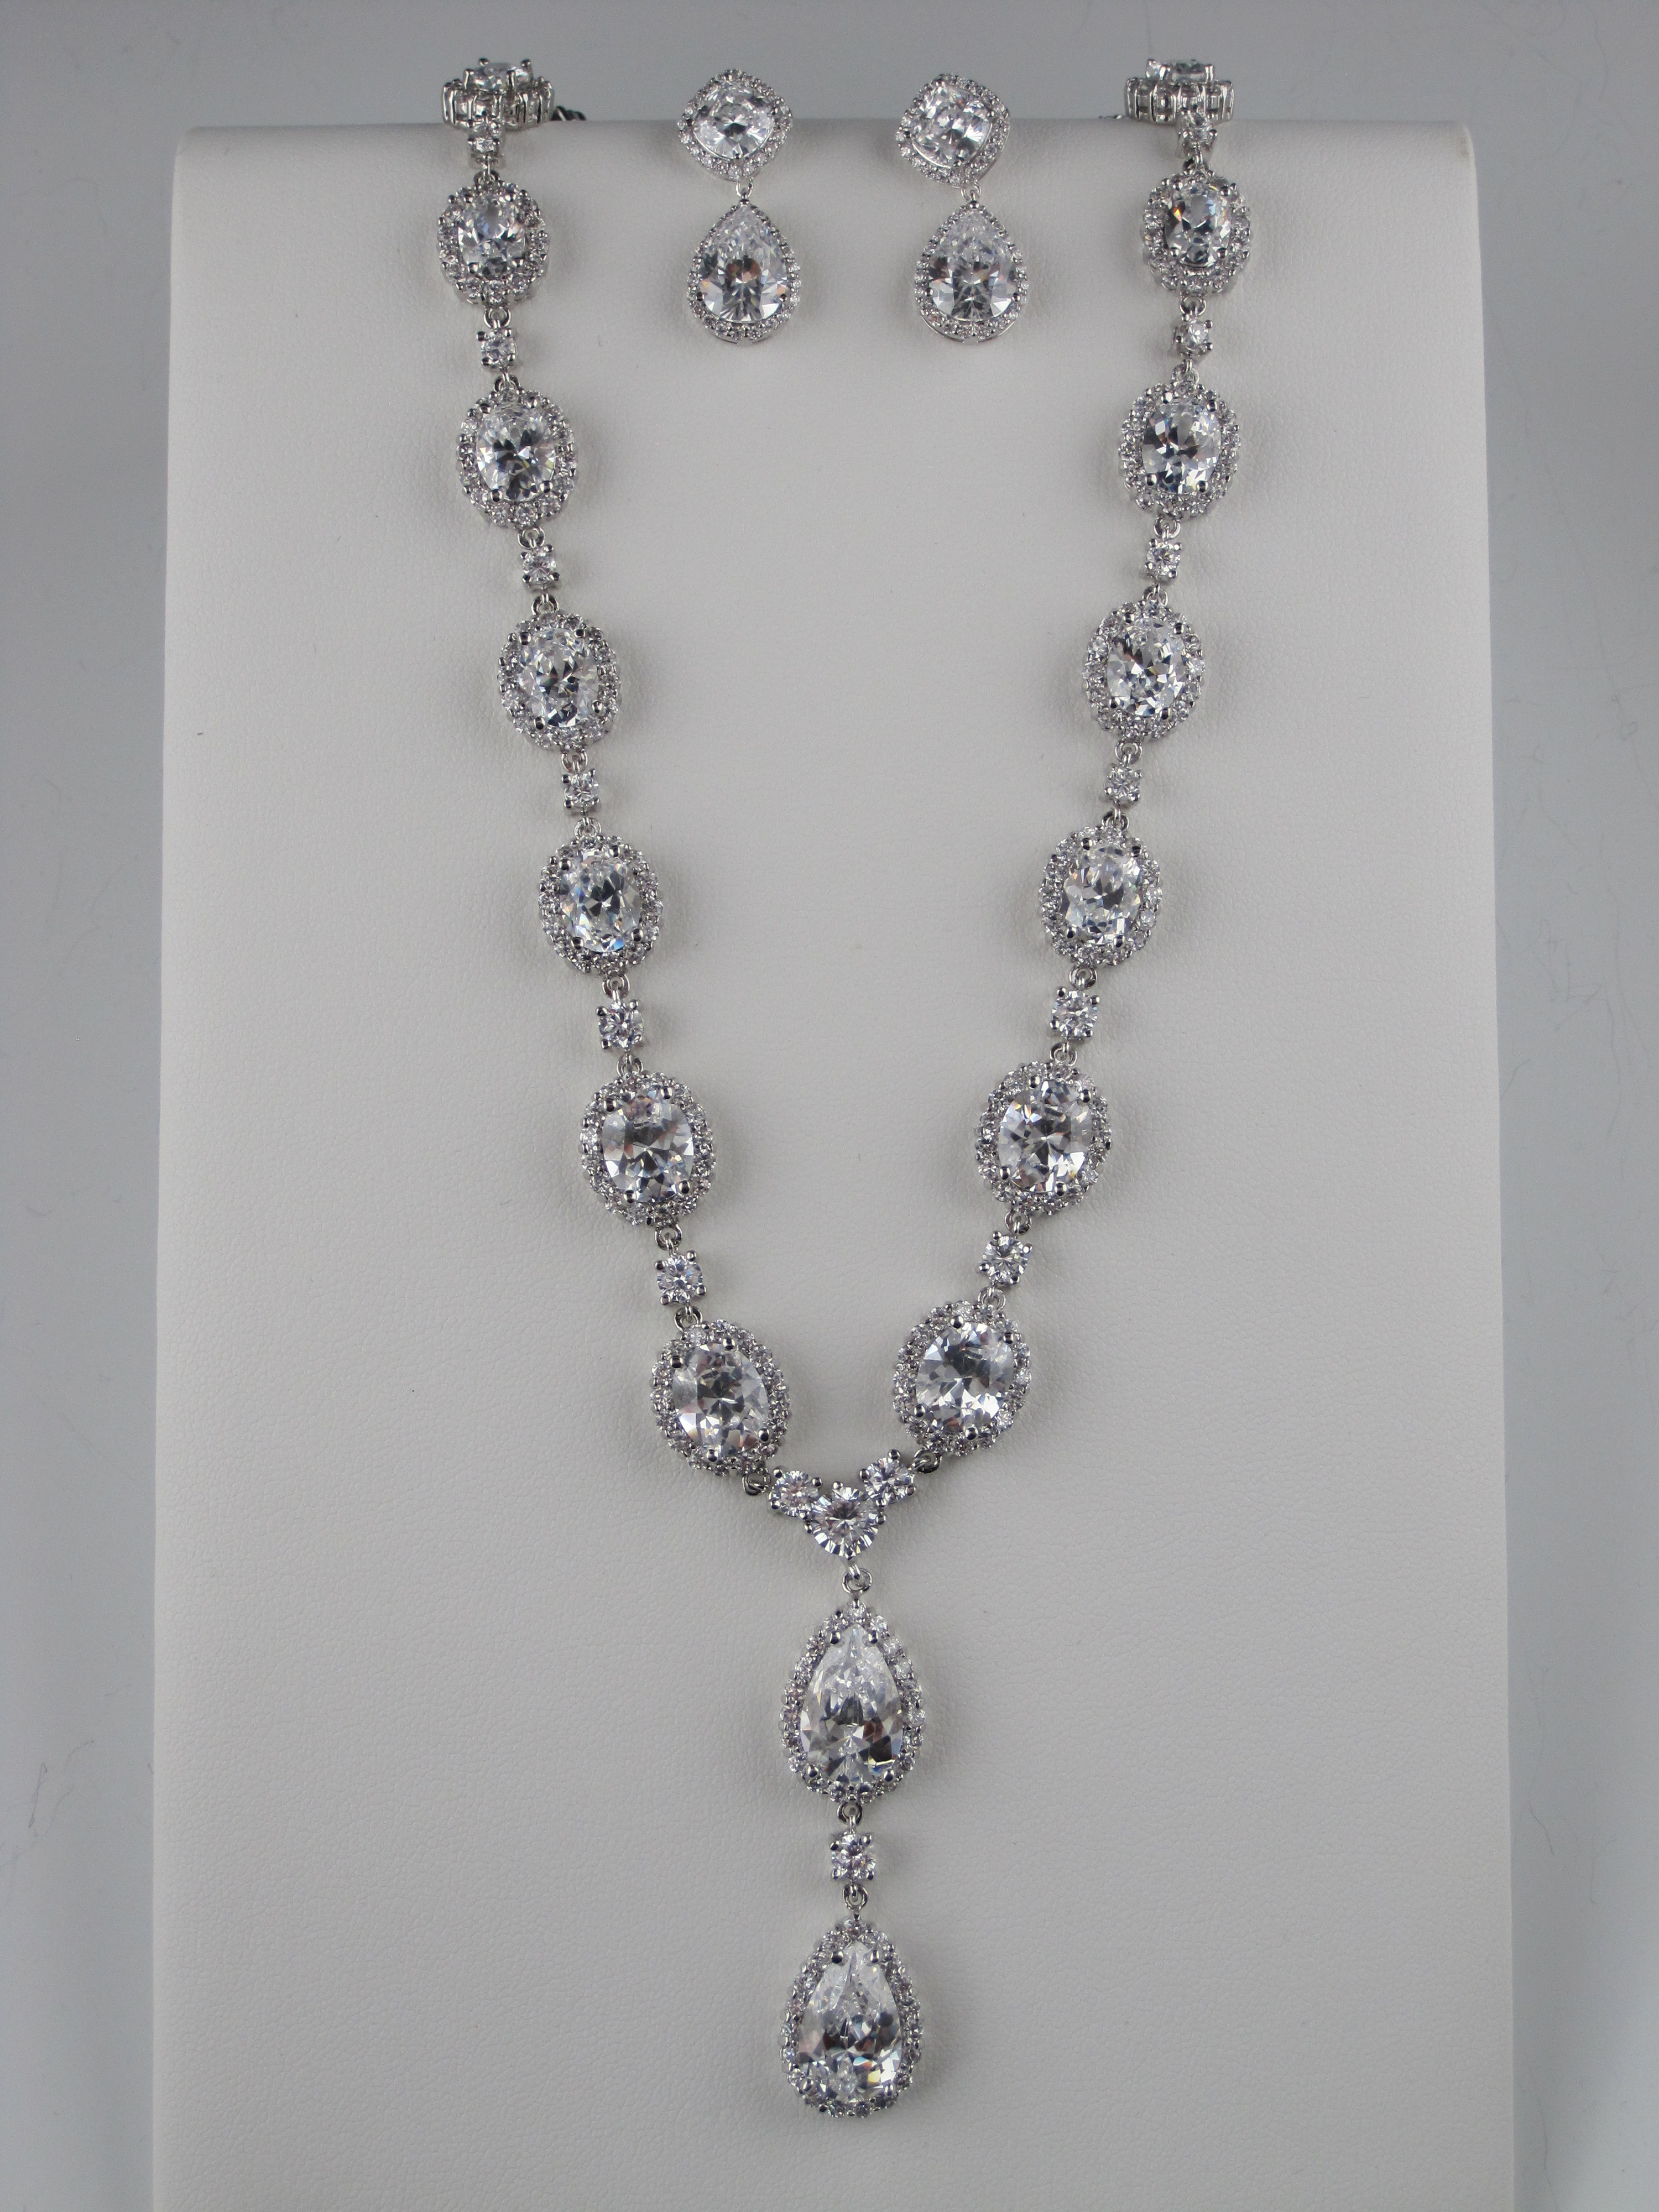 necklace_of_cascading_cubic_zirconium_drops_and_matching_earrings, art deco inspired bridal jewelry